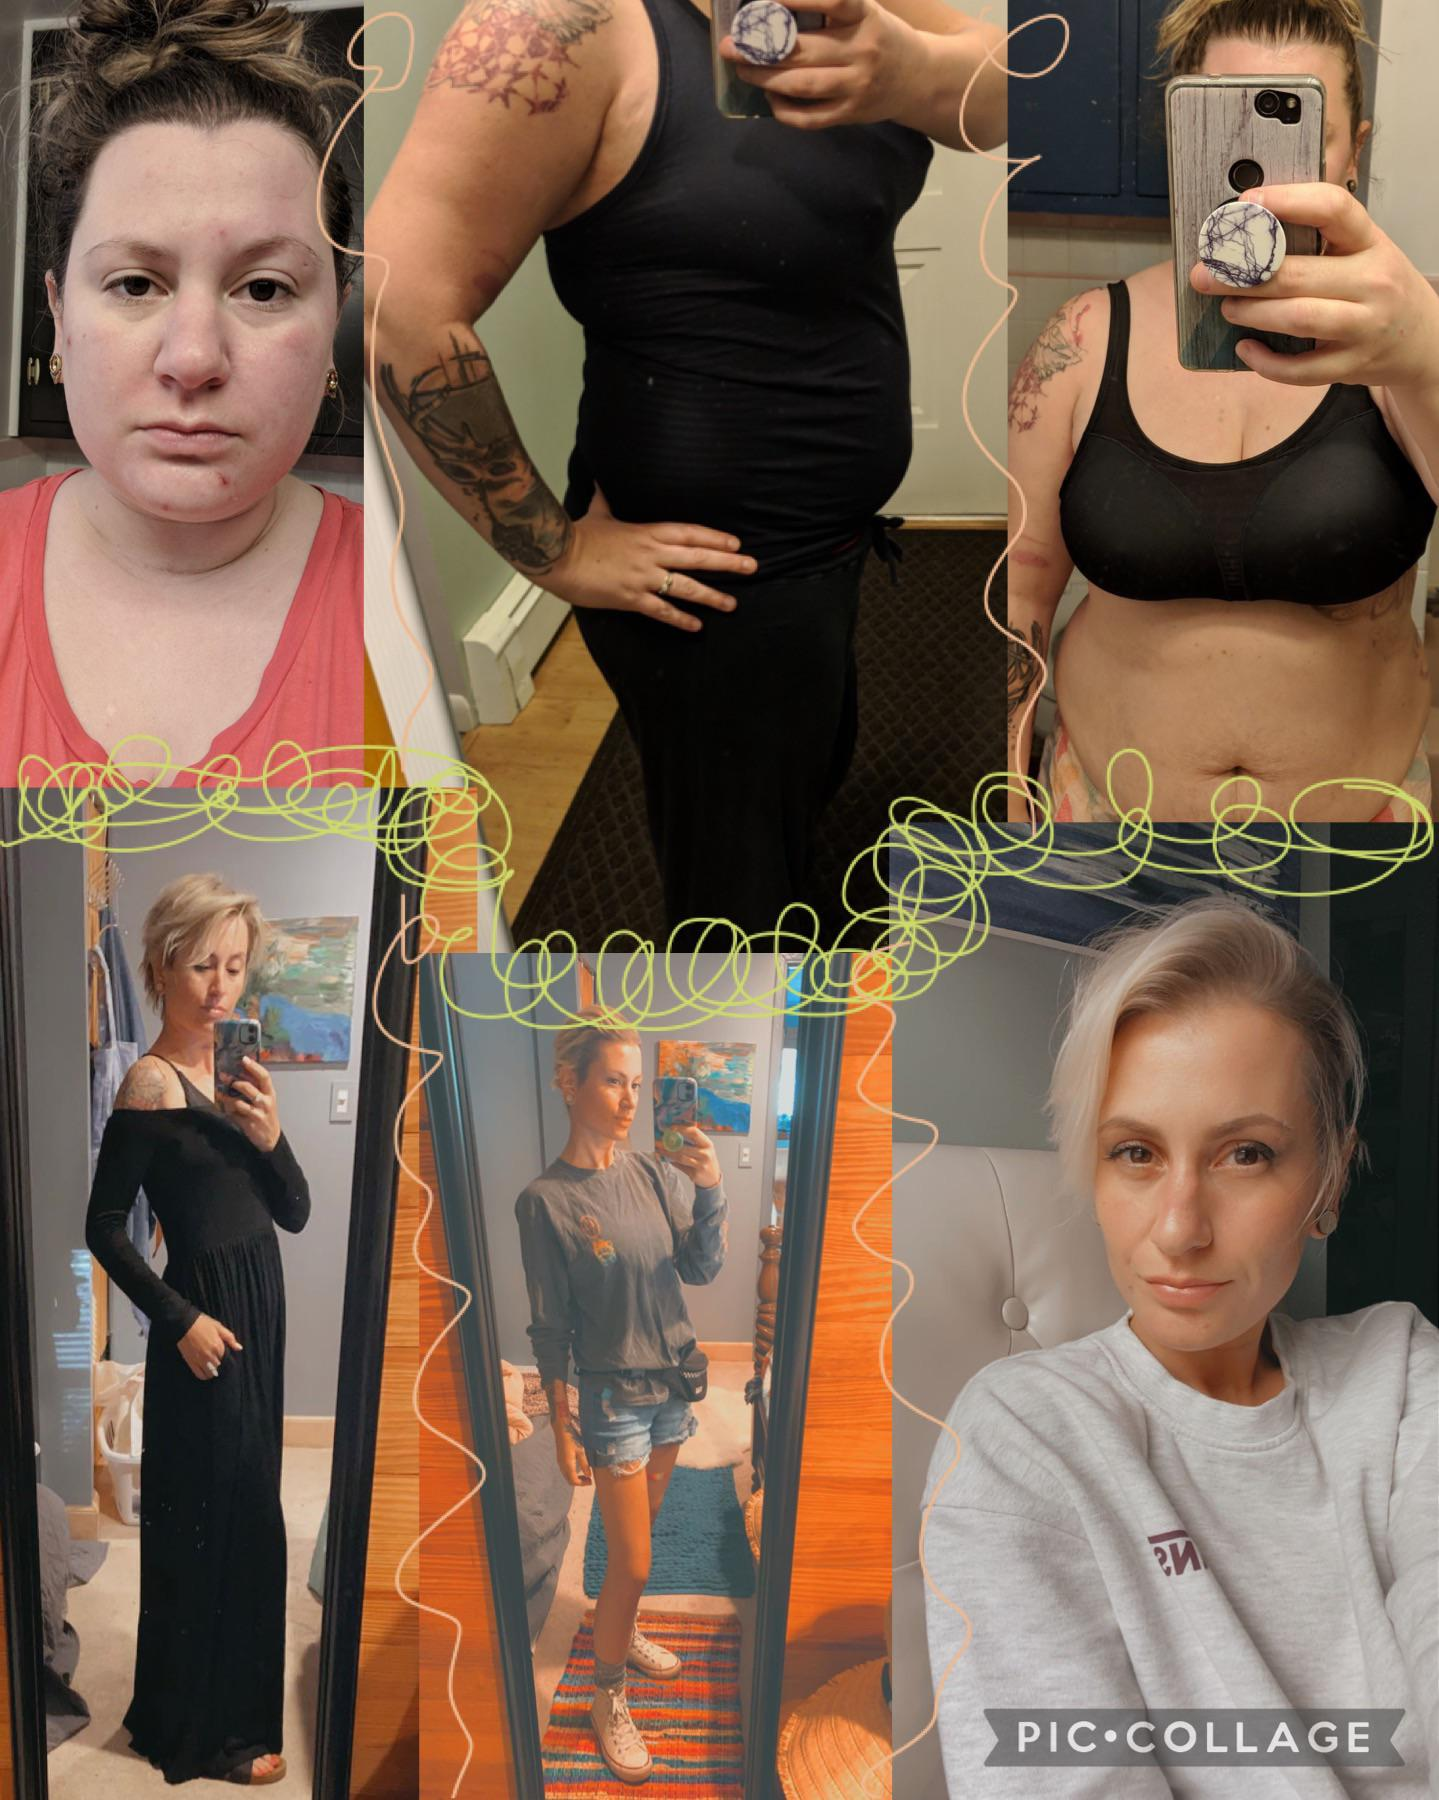 5 foot 2 Female Before and After 145 lbs Weight Loss 250 lbs to 105 lbs